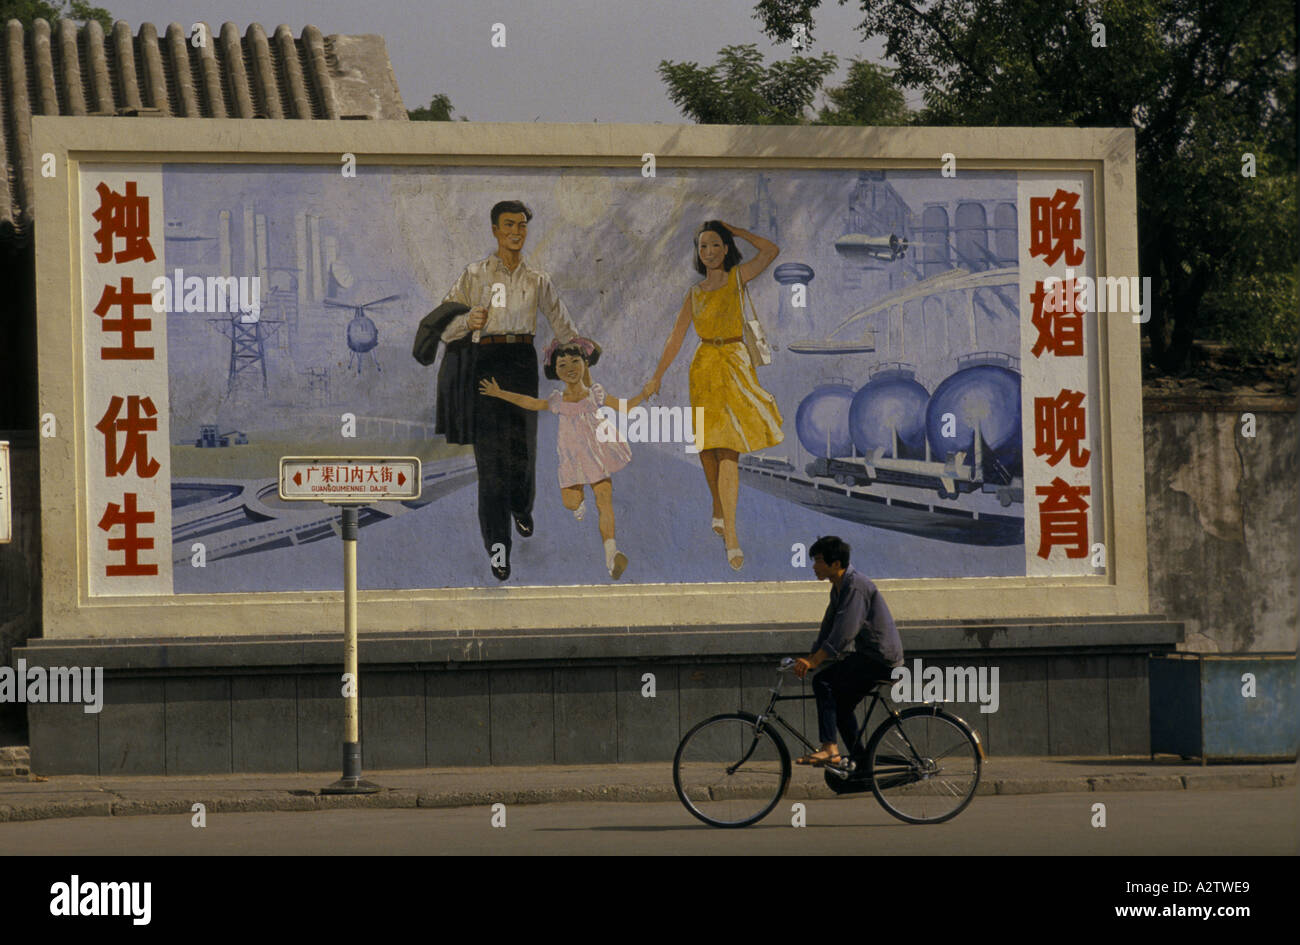 One child policy billboard in China - Stock Image